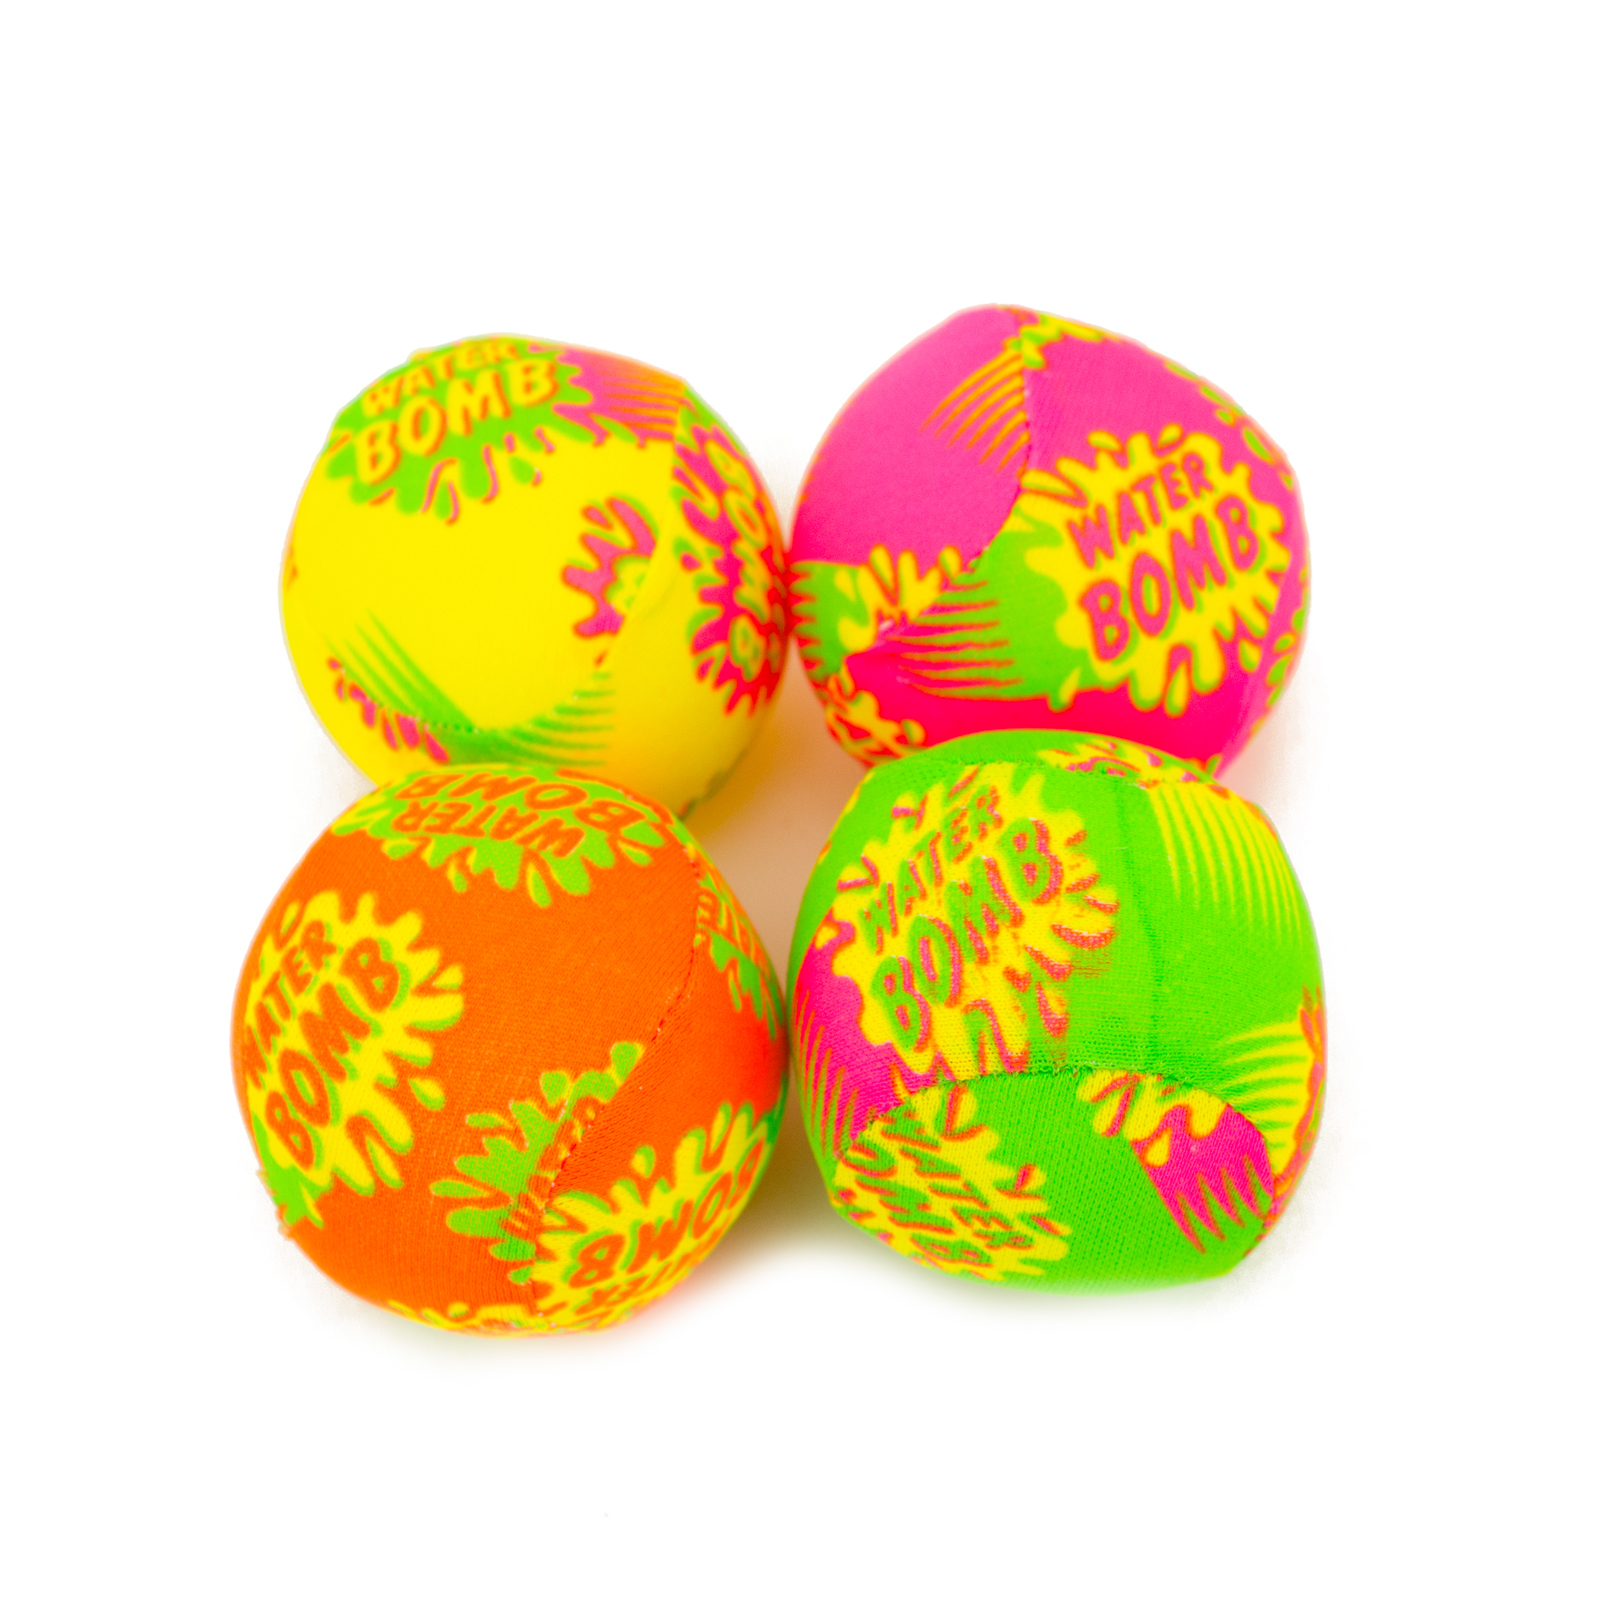 24PK Water Splash Balls Pool Toy Soaked Bomb Grenades Summer Party Toys